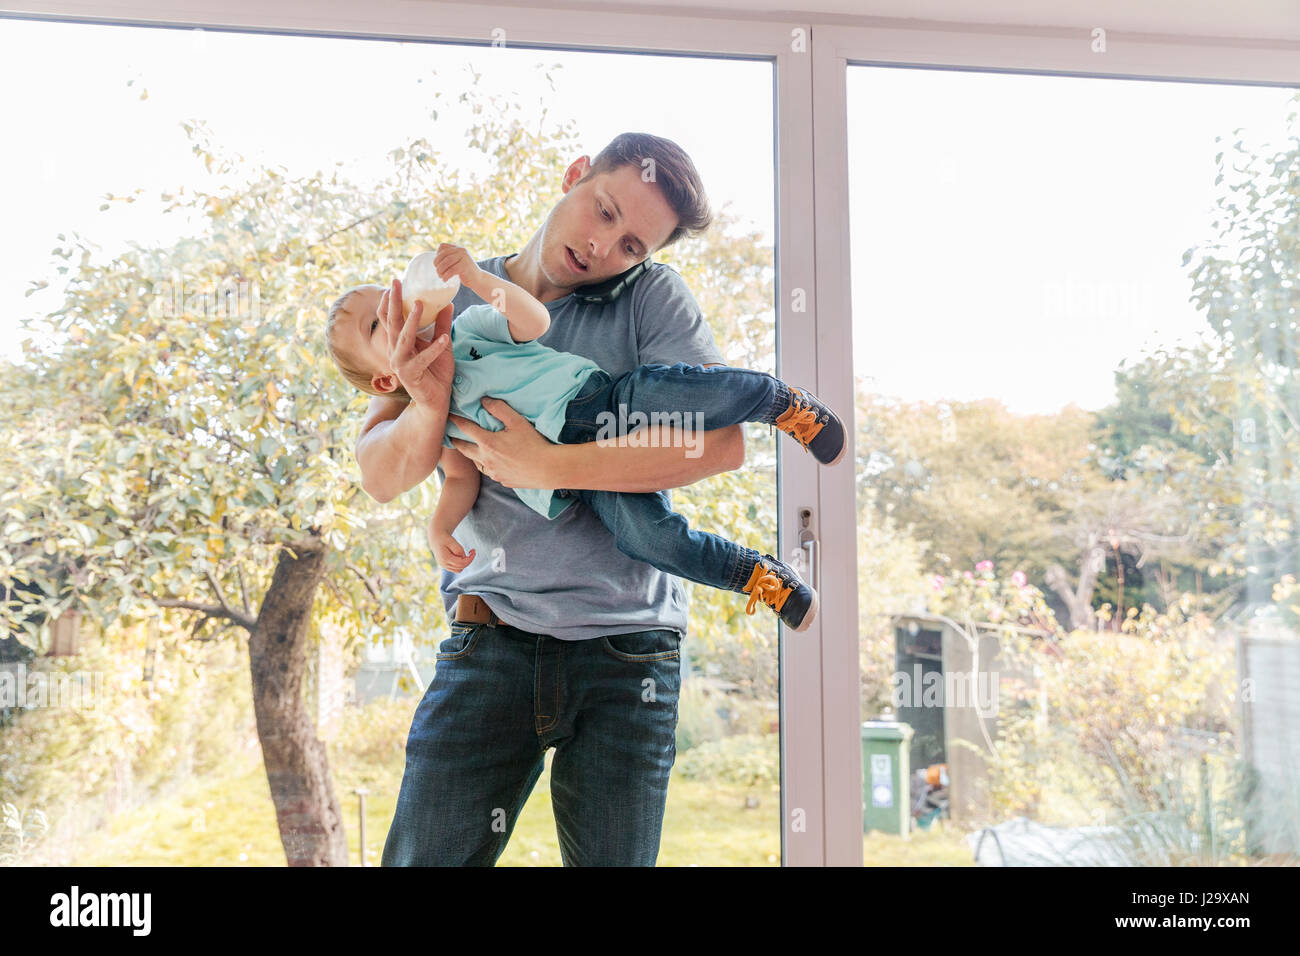 Father holding toddler son while on phone at home, by window - Stock Image